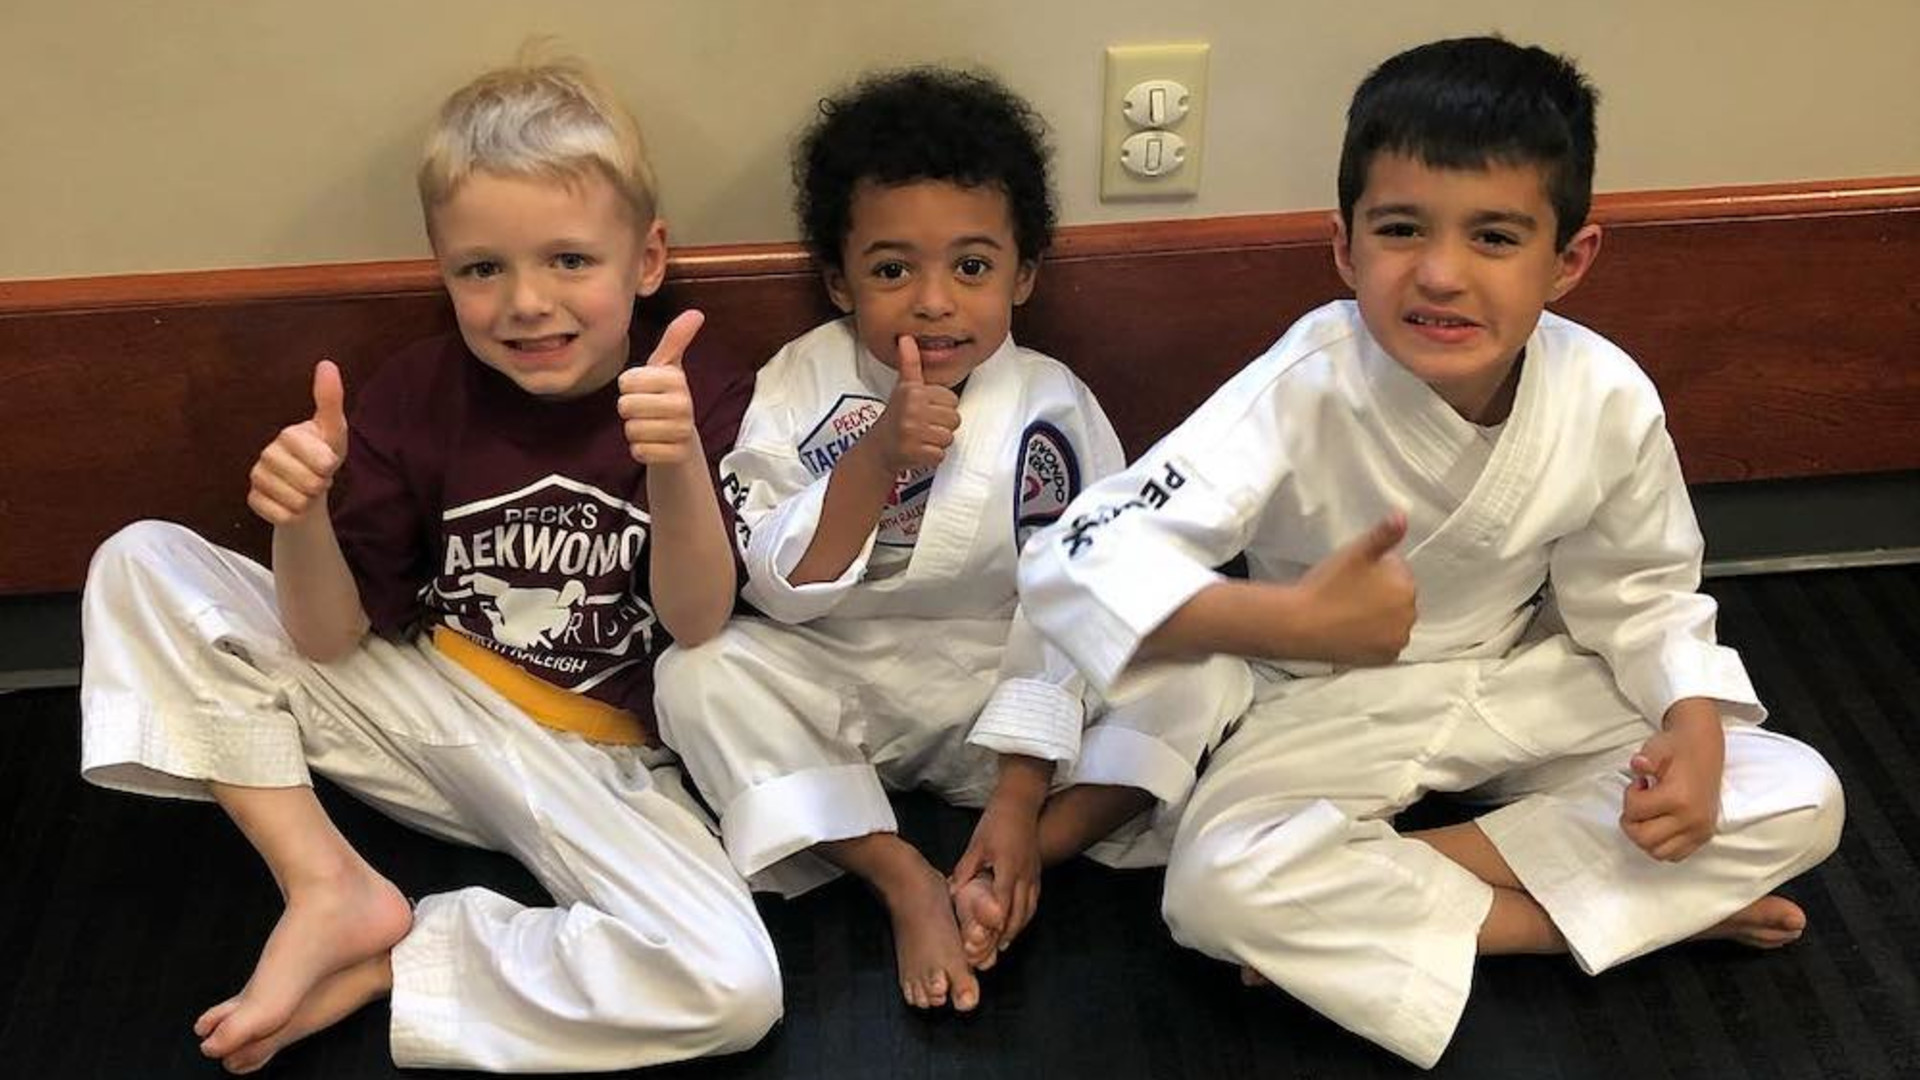 "<strong><span style=""color:#C70214;"">Reserve Your First Class and See What Martial Arts Can Do For You!</span></strong>"